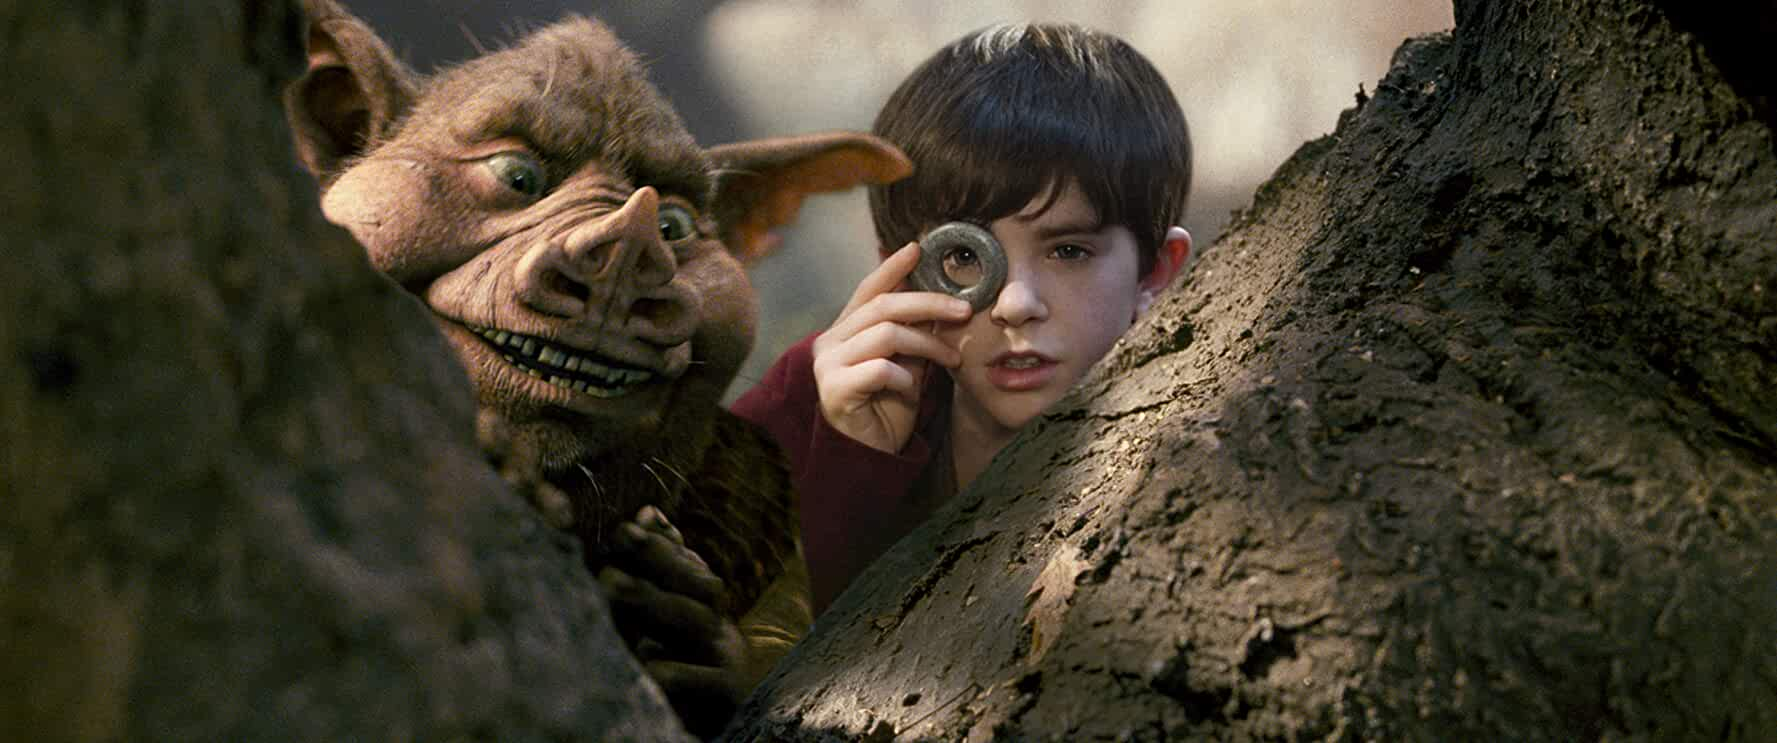 Freddie Highmore in The Spiderwick Chronicles (2008)